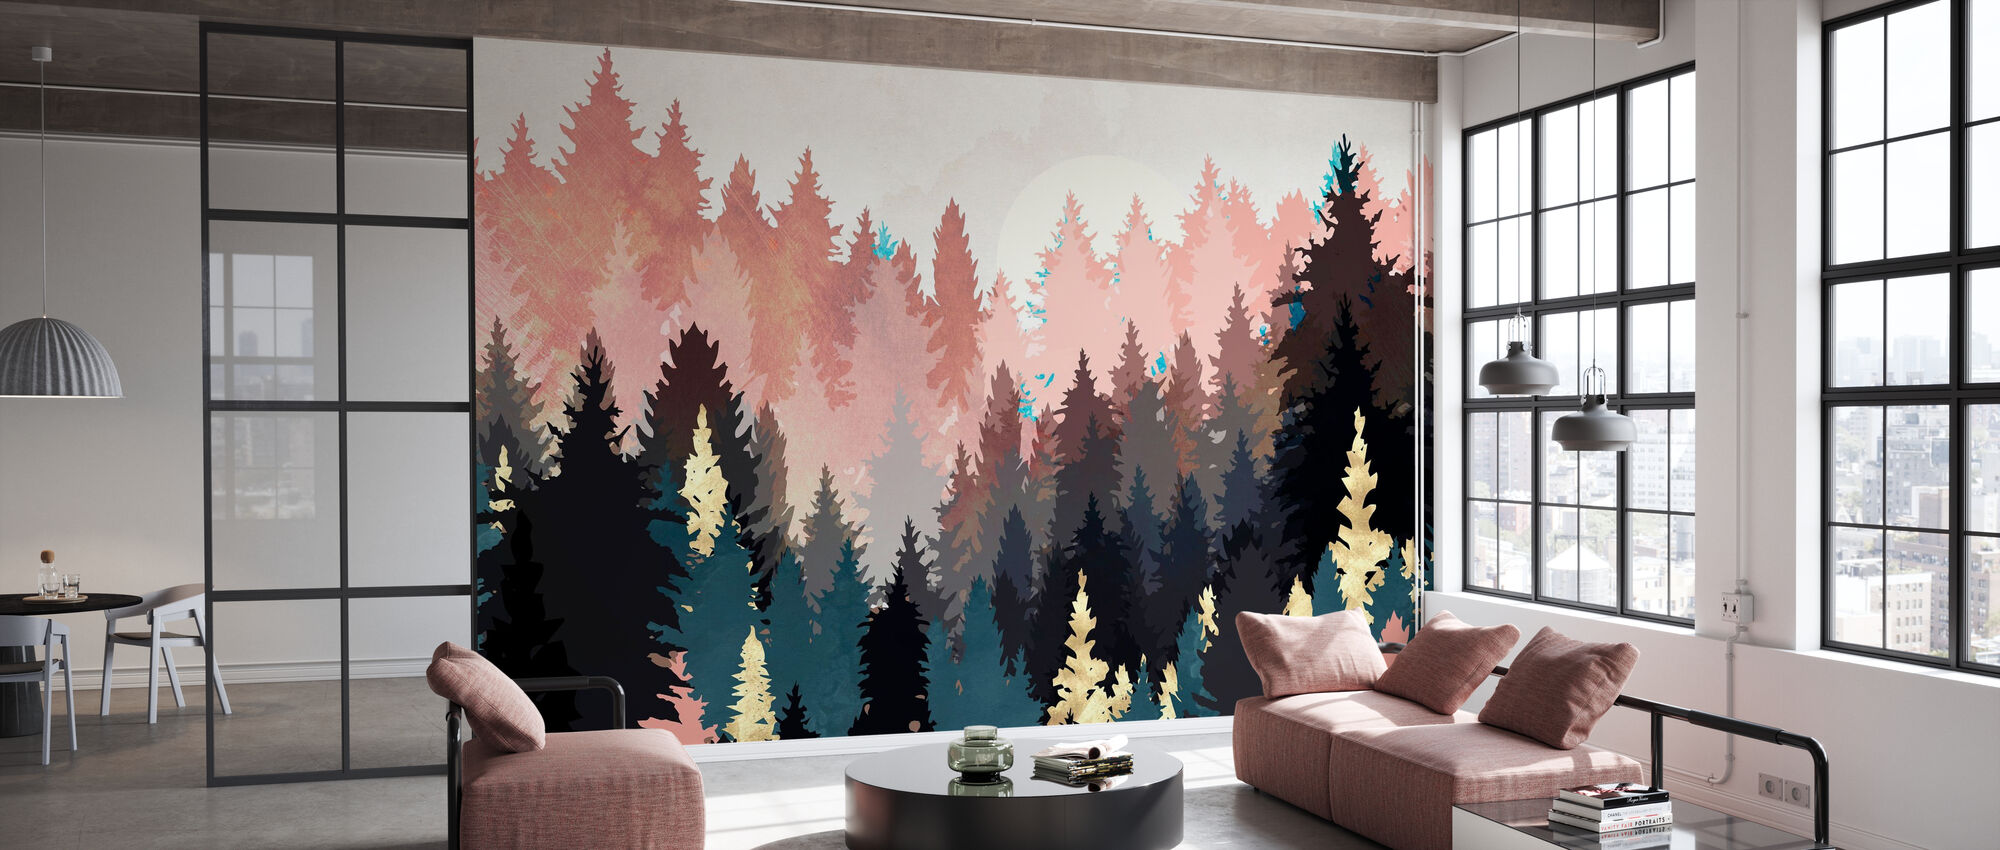 Spring Forest Light - SpaceFrogDesigns - Wallpaper - Office